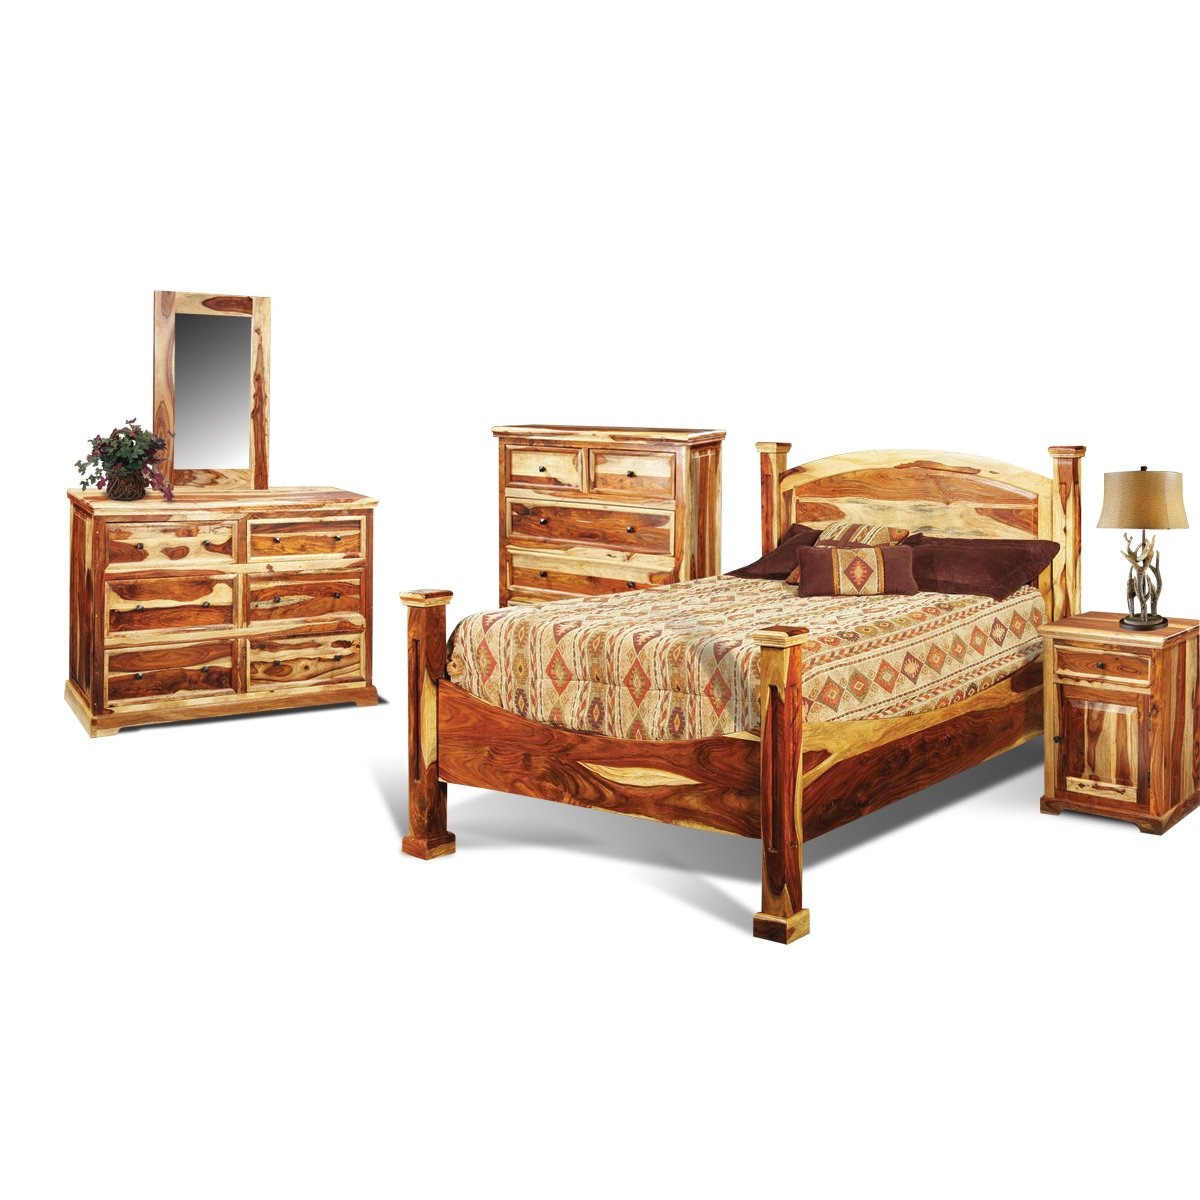 jaipur 6 piece king bedroom set rcwilley image1